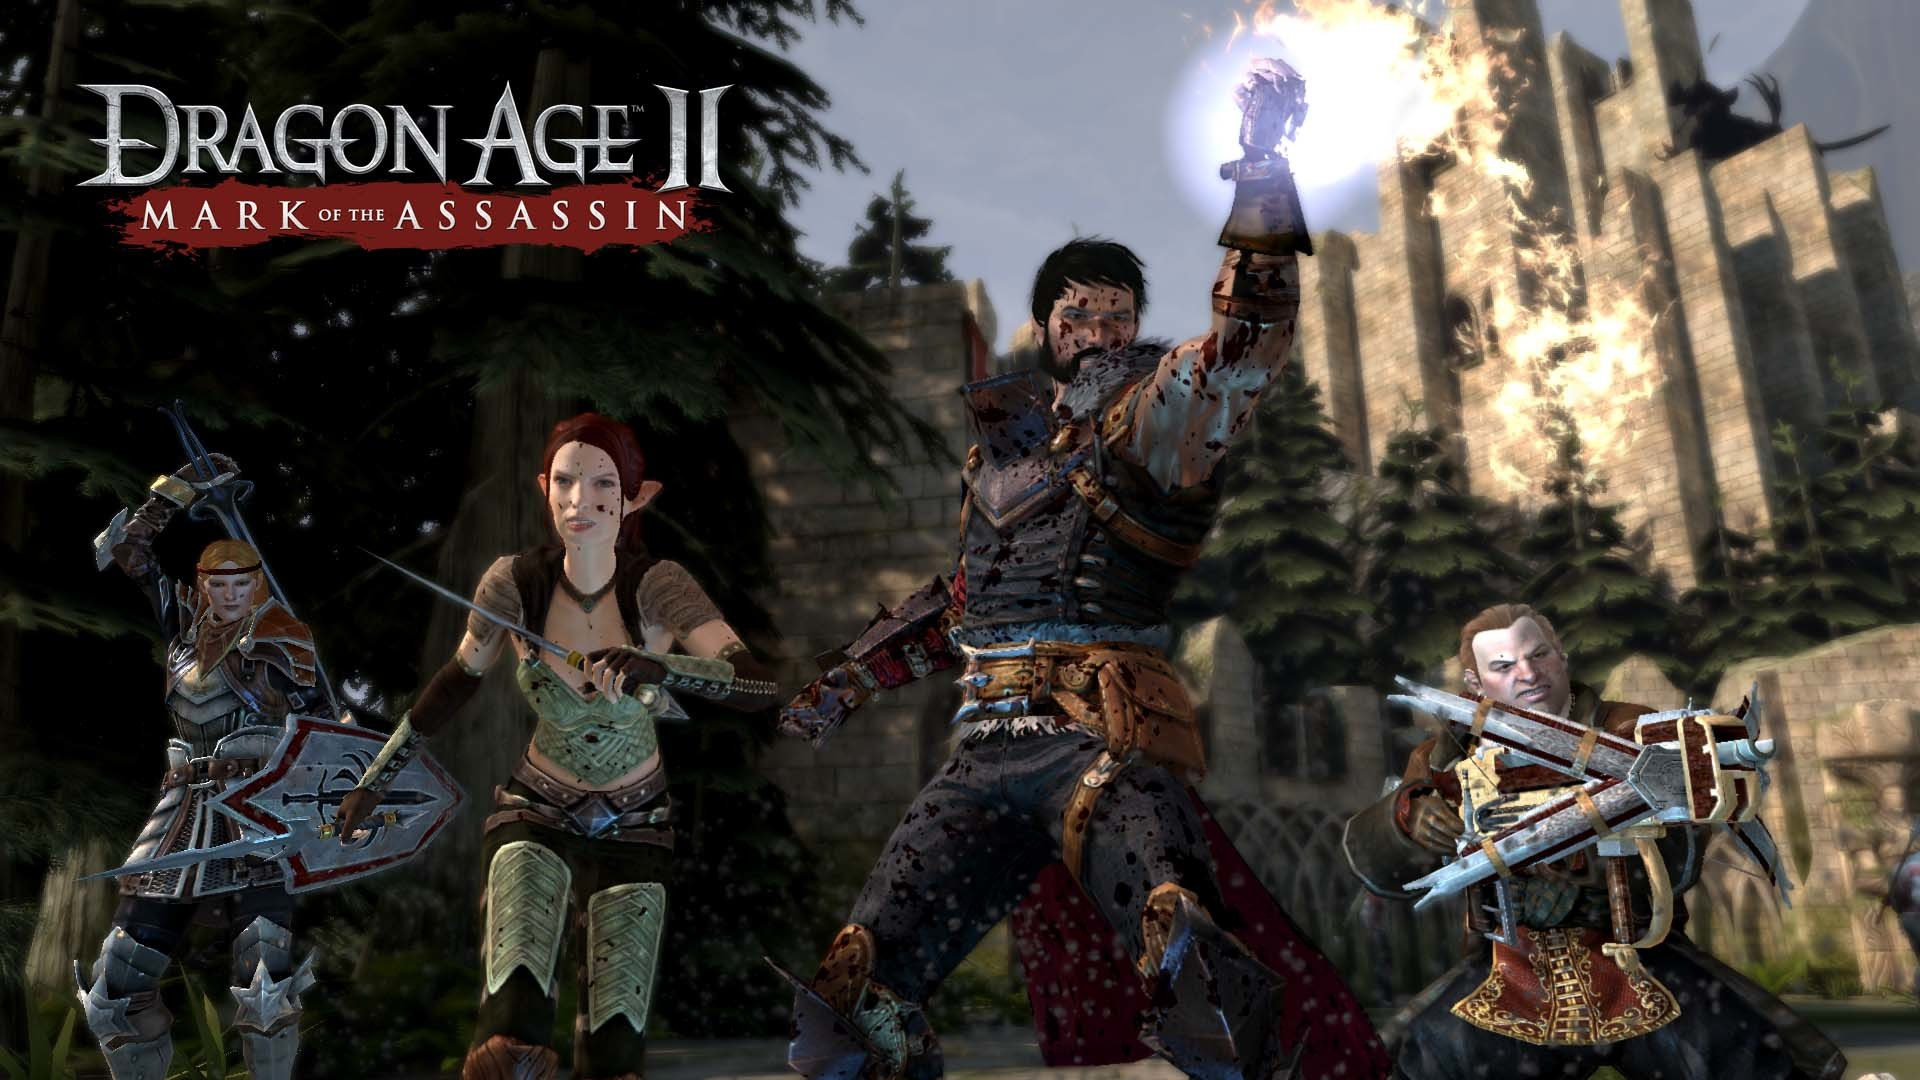 1920x1080 The upcoming Dragon Age II: Mark of the Assassin DLC launches October 11th  for PS3, Xbox 360 and PC.